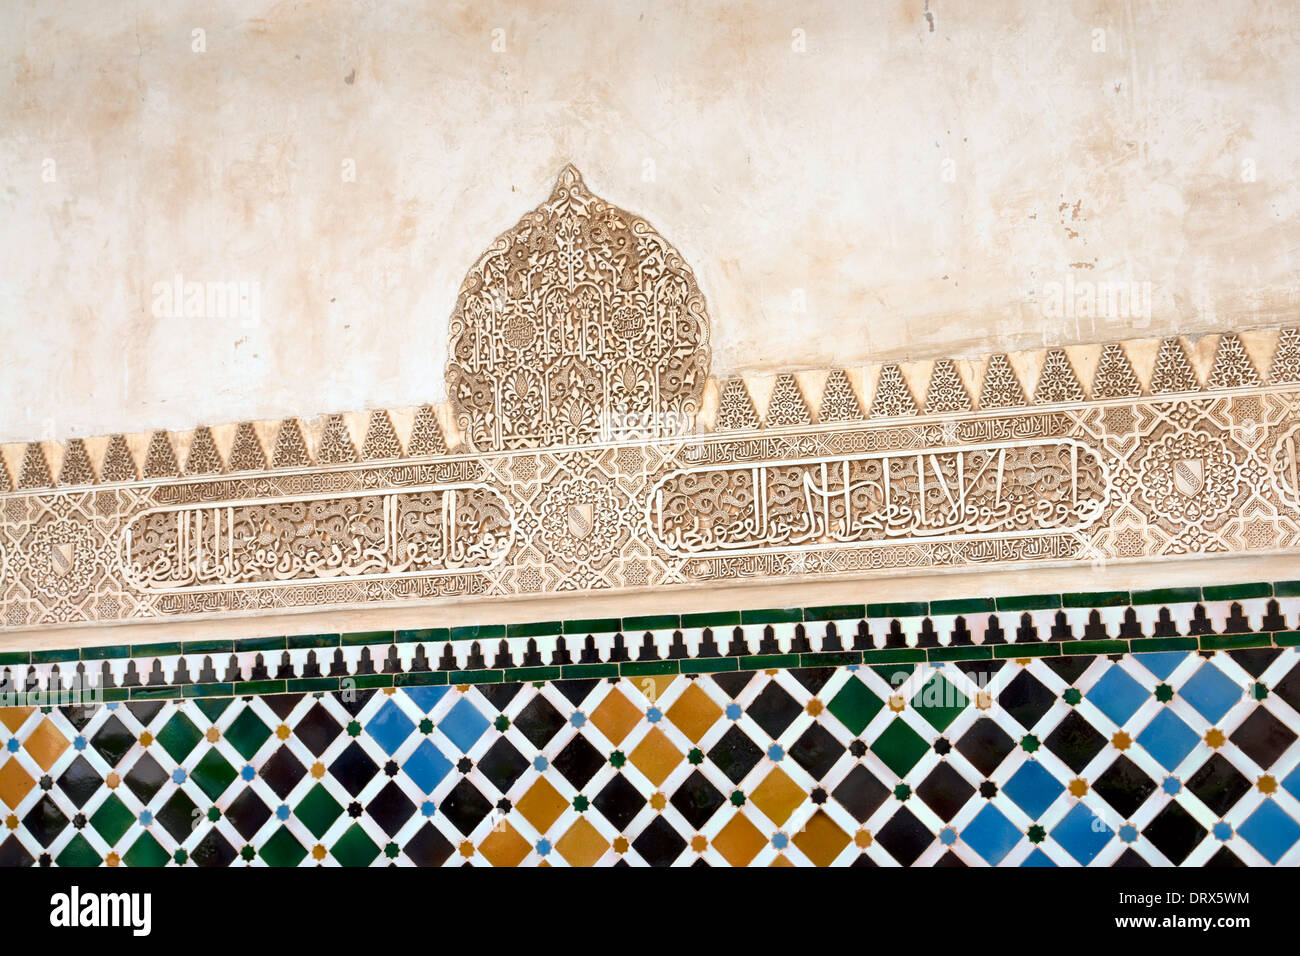 islamic decoration on the walls of one of the nasrid